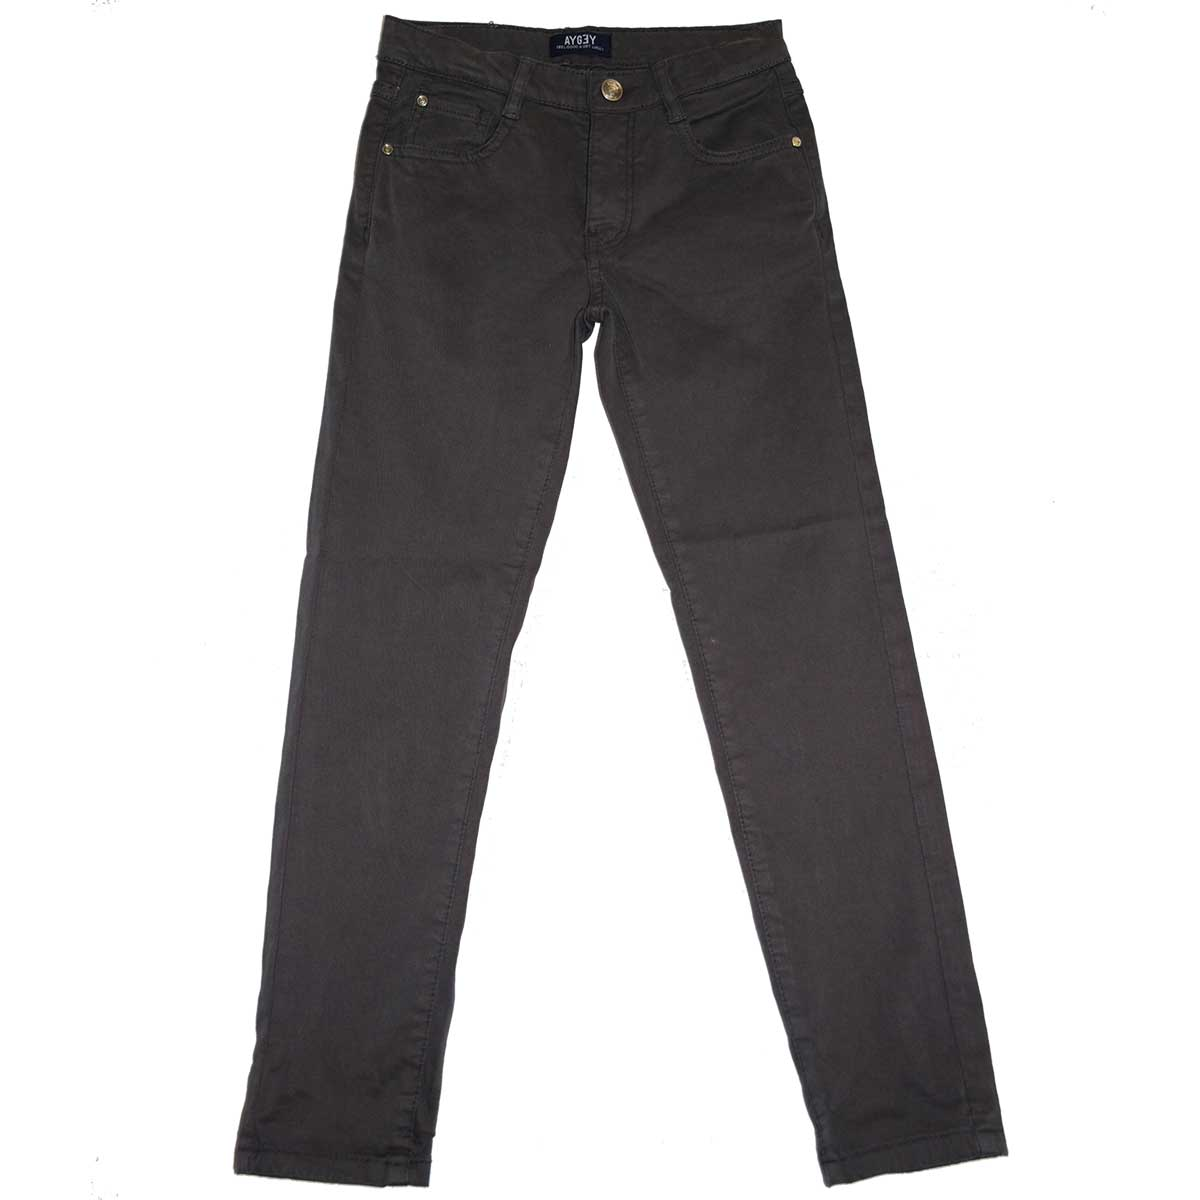 Moleskin pants of the line Children's Clothing Aygey regular model   five pockets with adjusta...